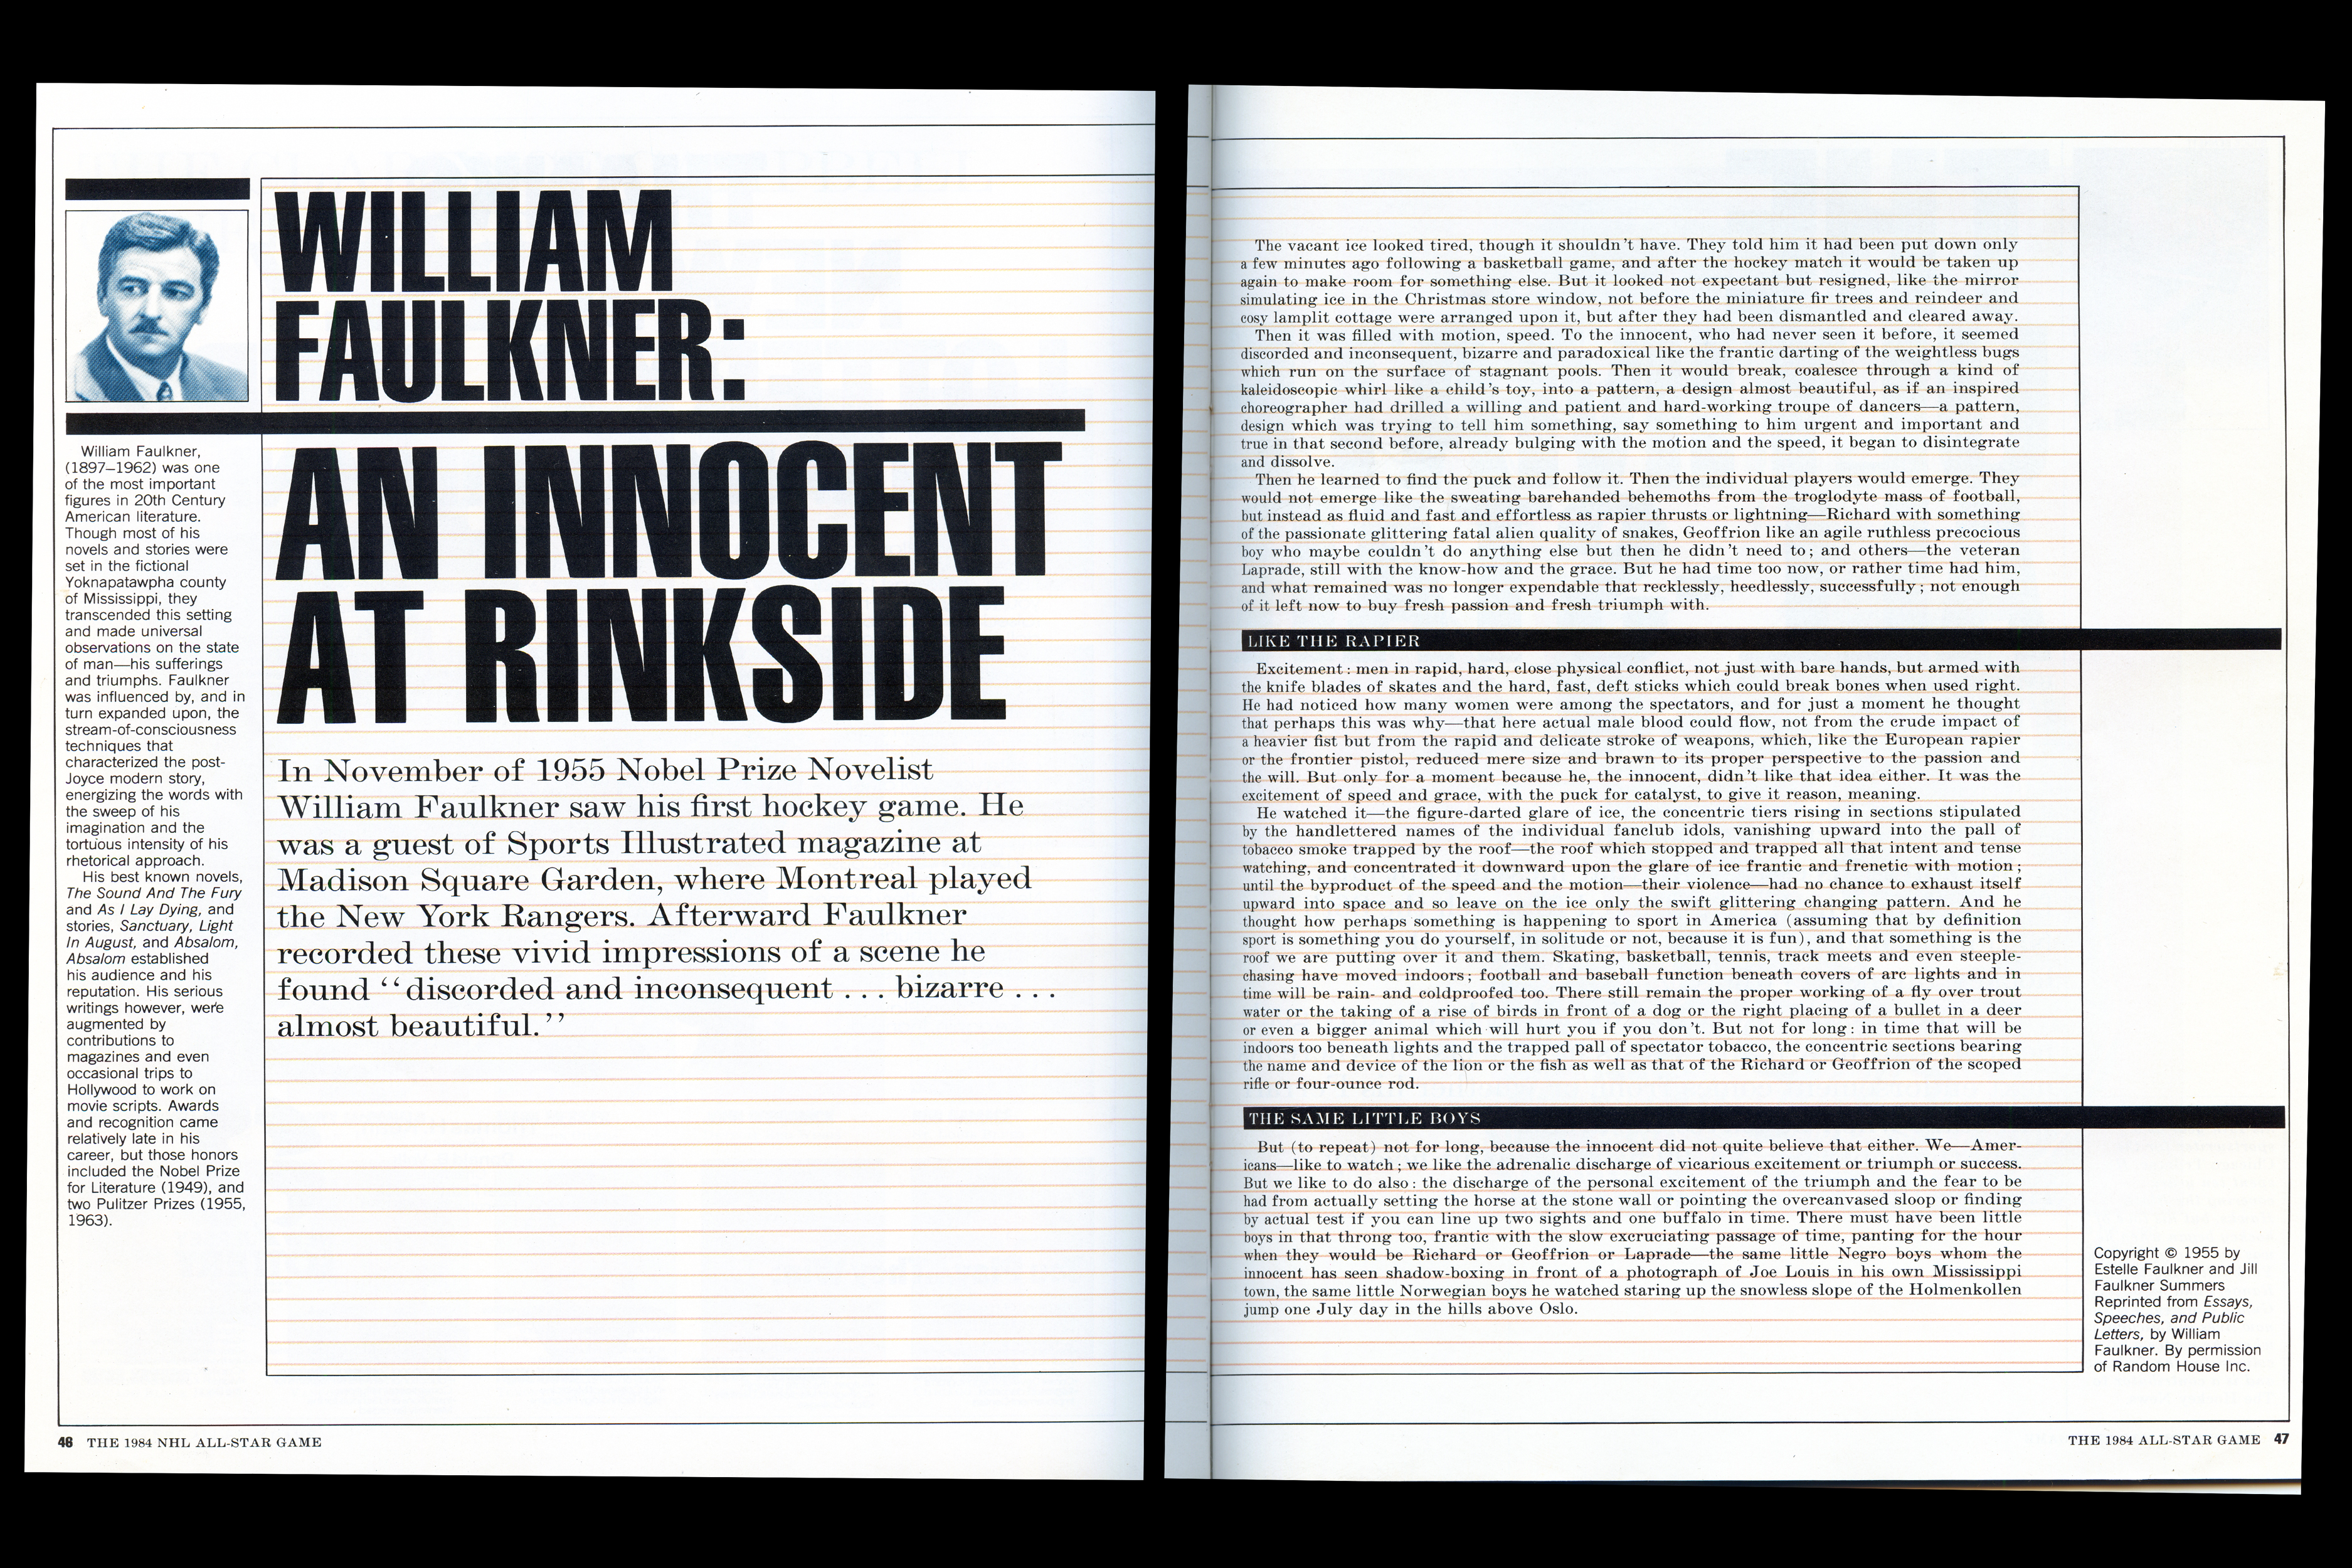 william faulkner essays william faulkner essay on ice hockey william faulkner essay on ice hockey vashivisuals blogwilliam faulkner